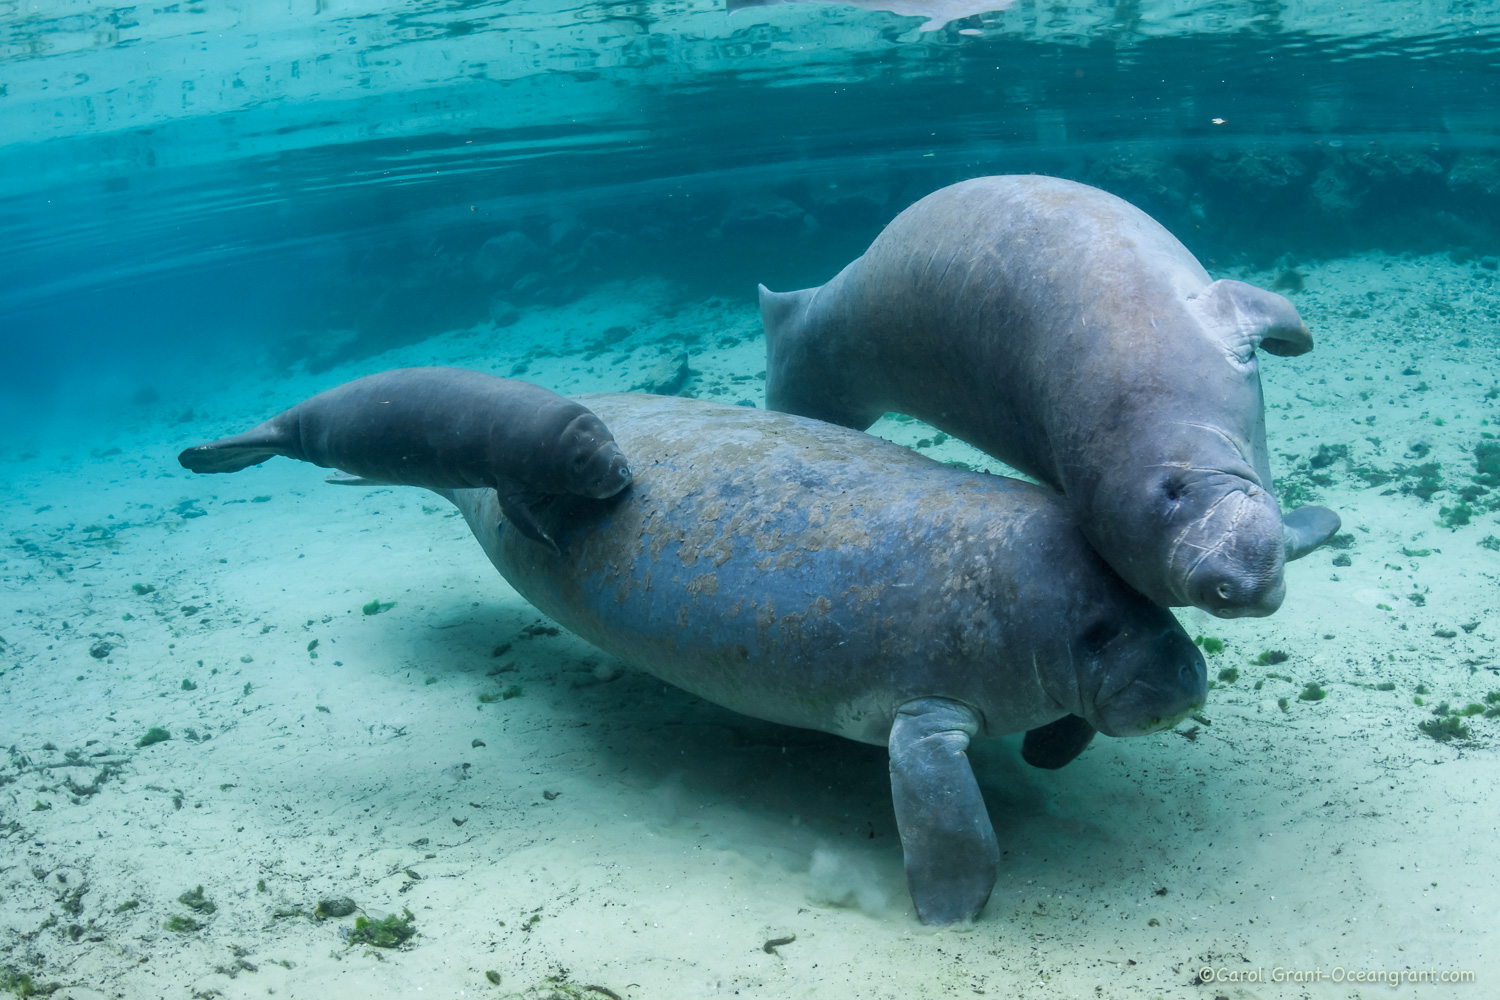 Mother manatee young calf with male,©CGrant-oceangrant.com